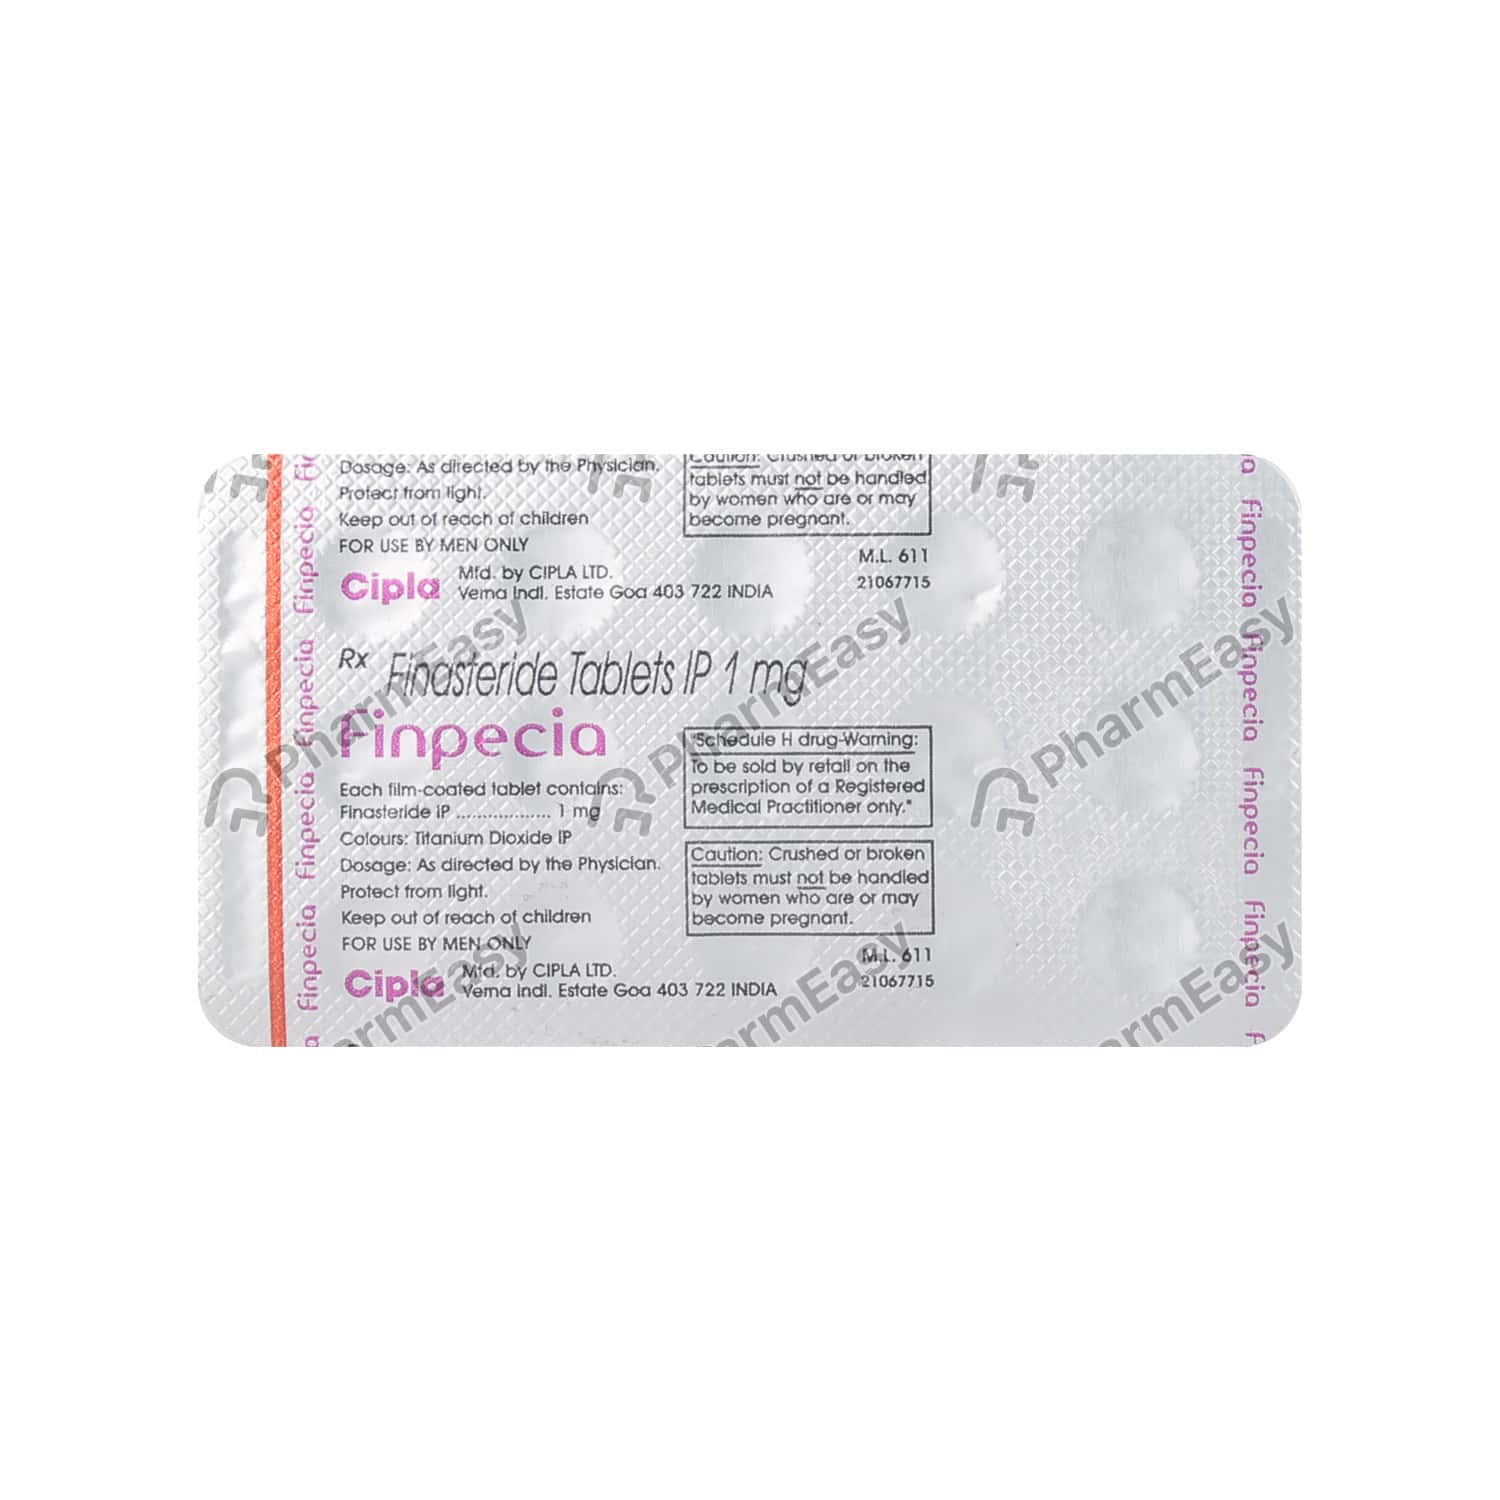 Finpecia 1mg Strip Of 15 Tablets